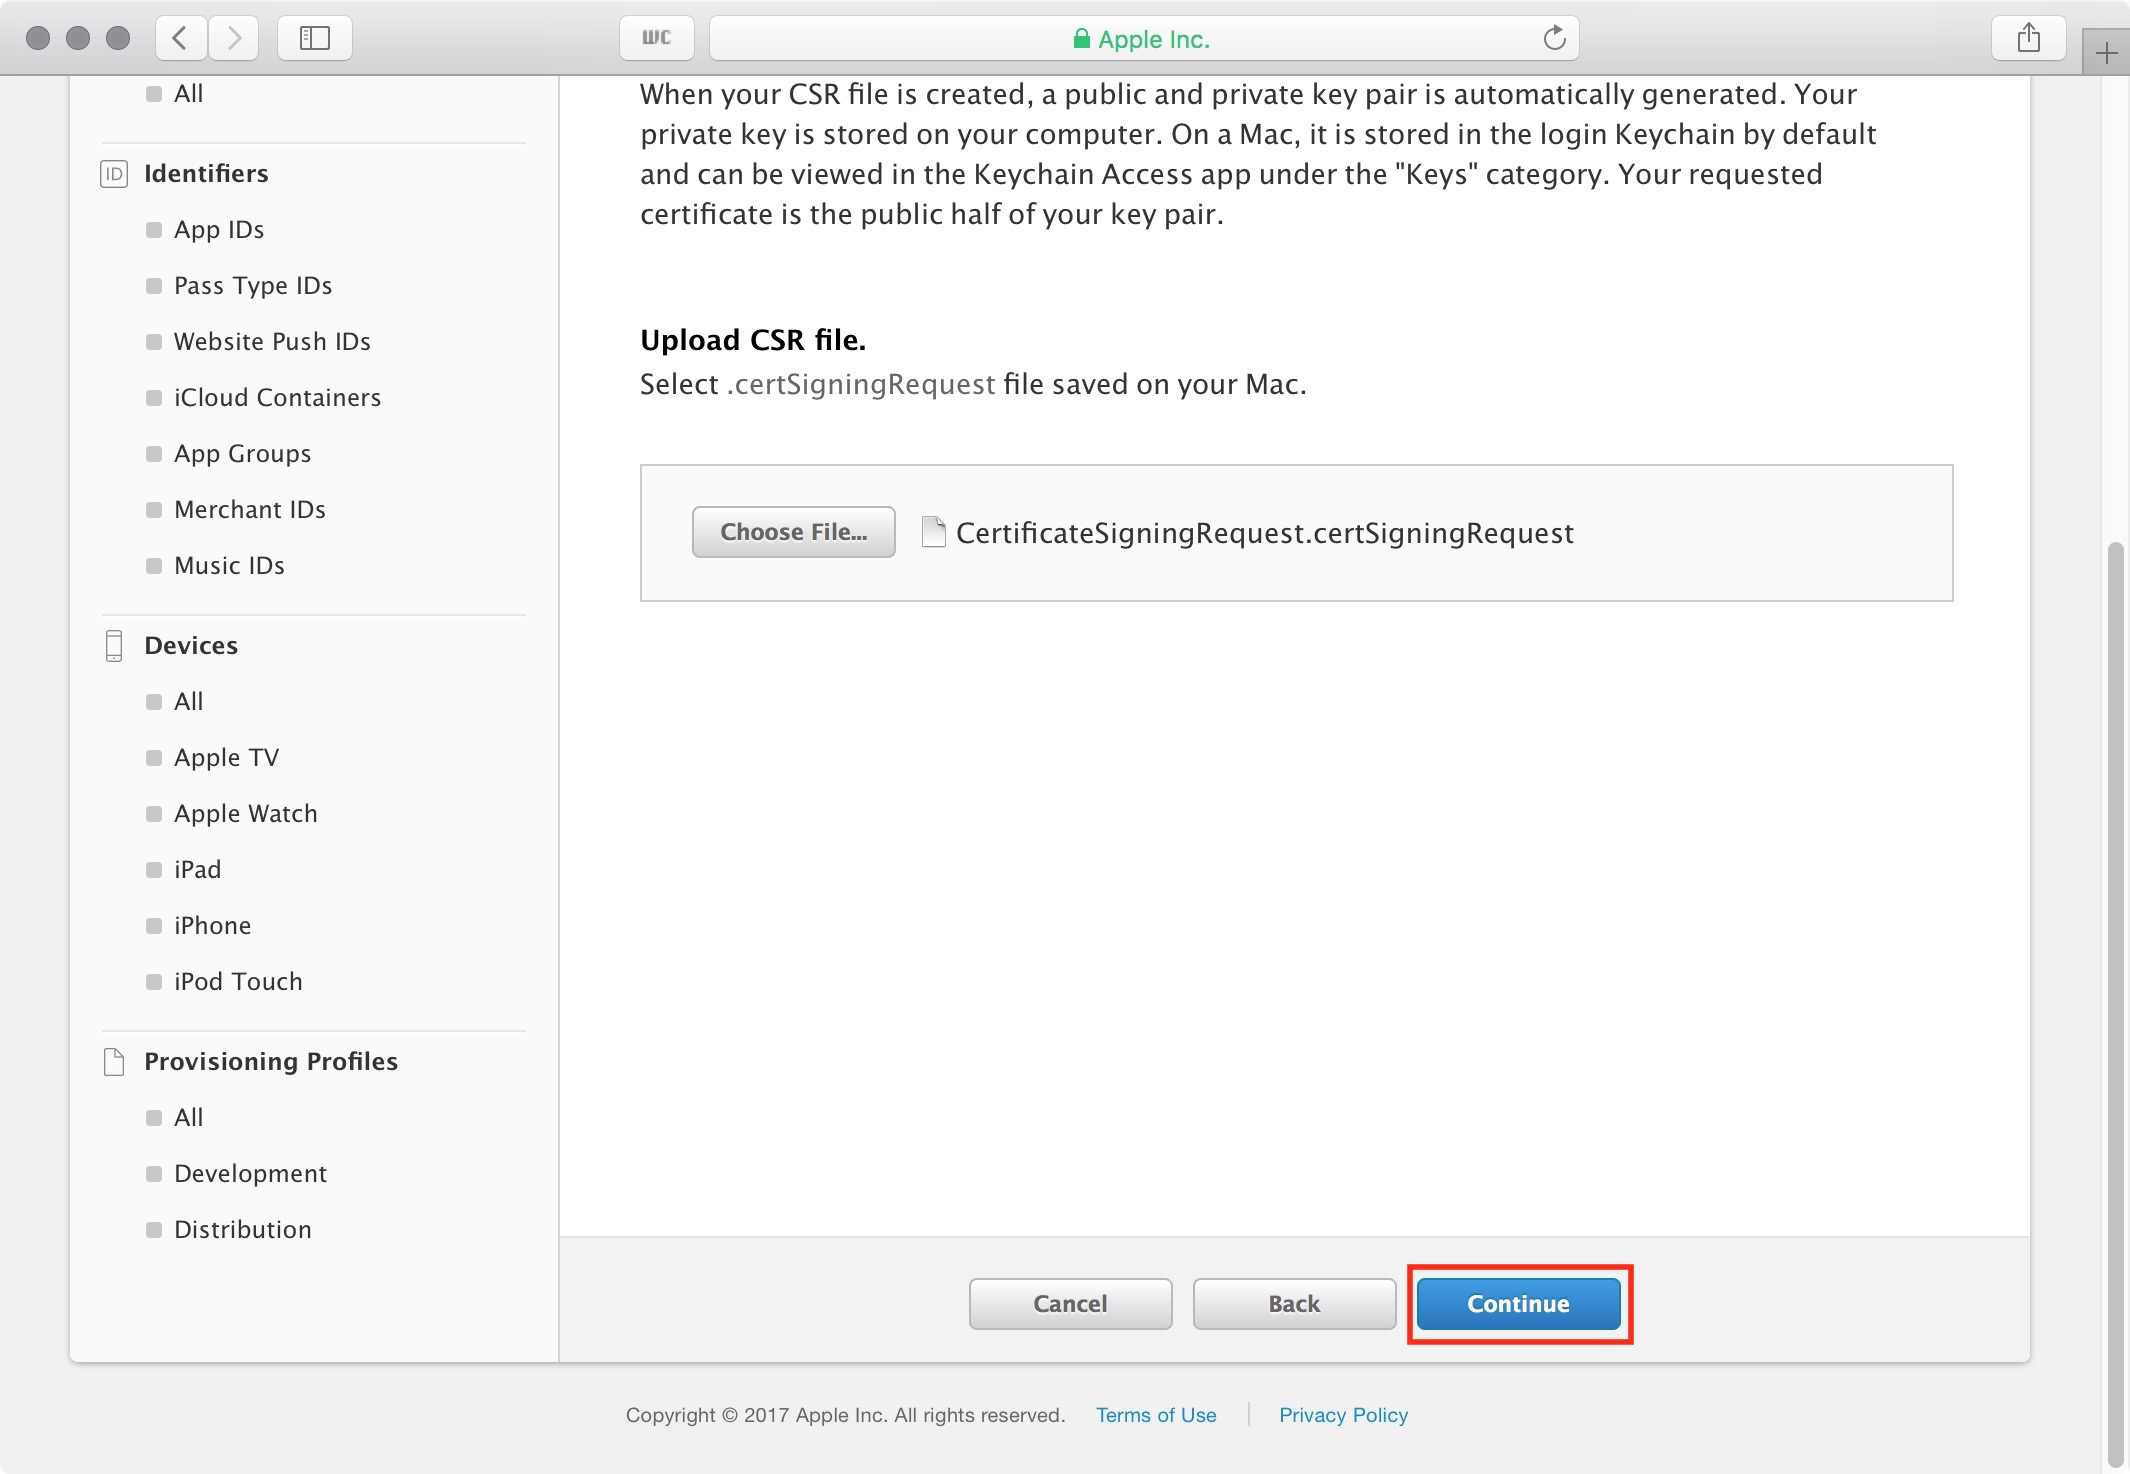 figure #18: Select Continue to upload the file